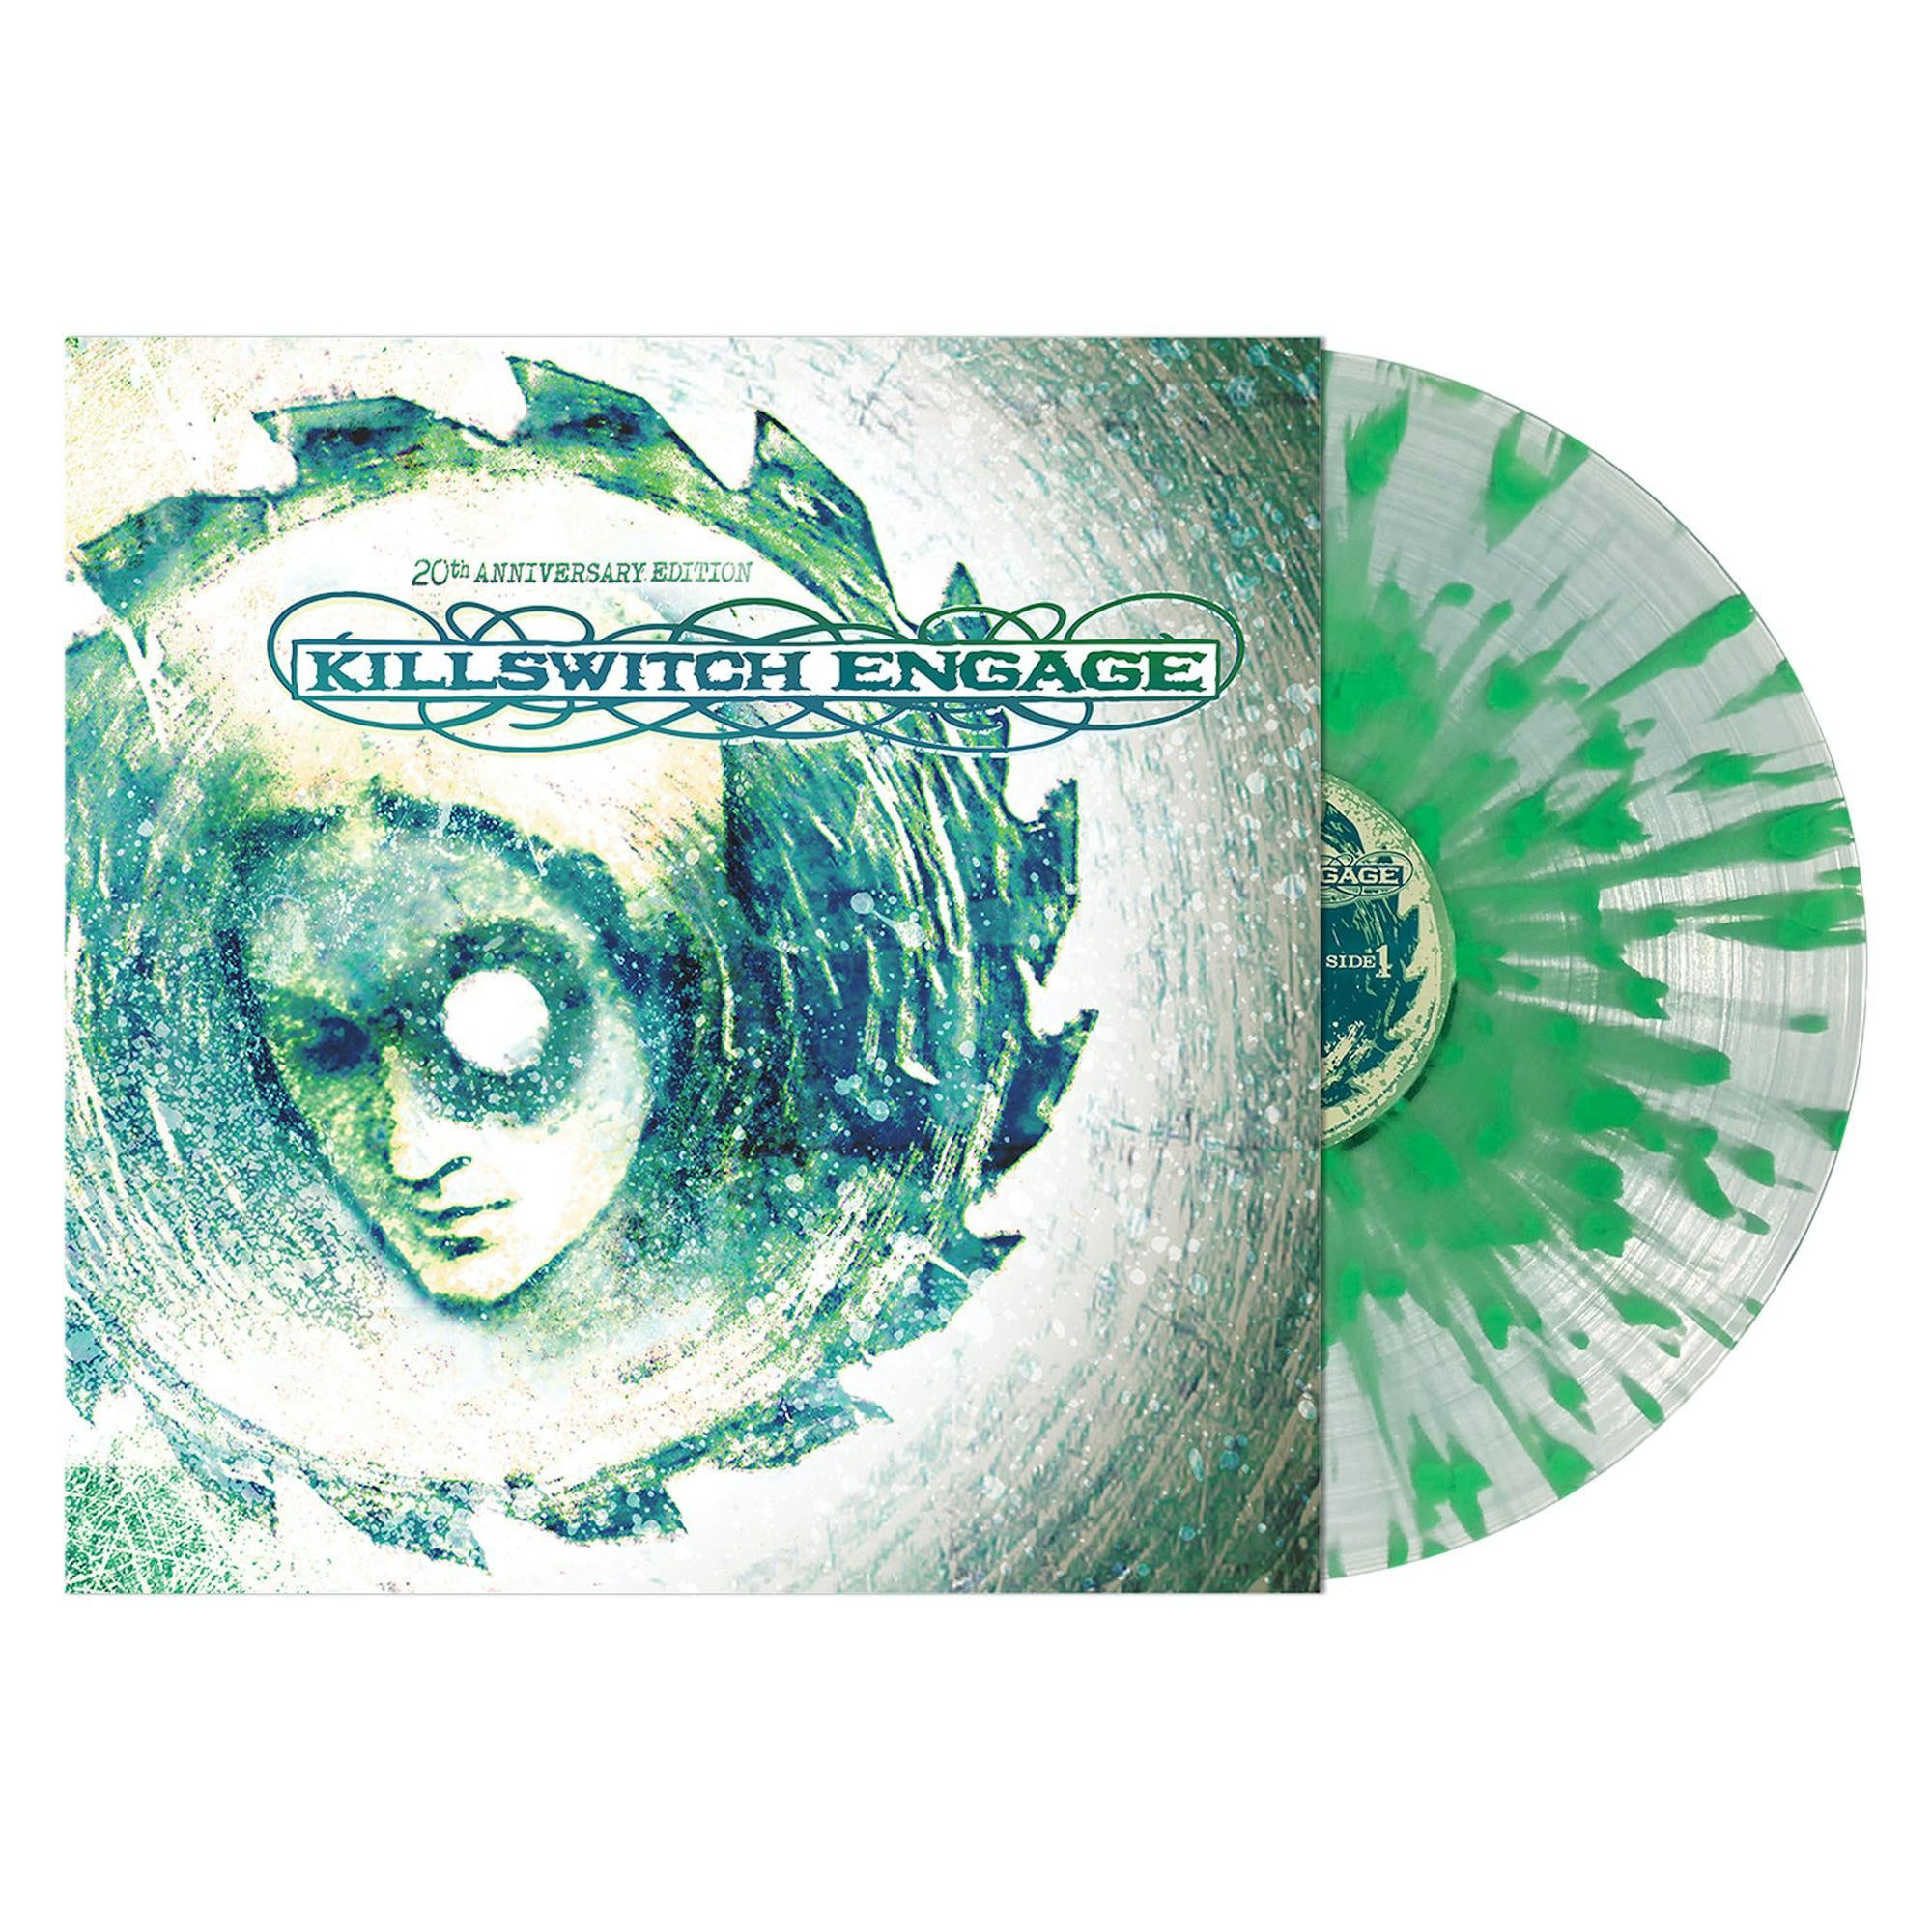 Killswitch Engage ‎– Killswitch Engage (2000) - New LP Record 2020 Metal Blade Limited Clear With Doublemint Splatter Vinyl - Metalcore